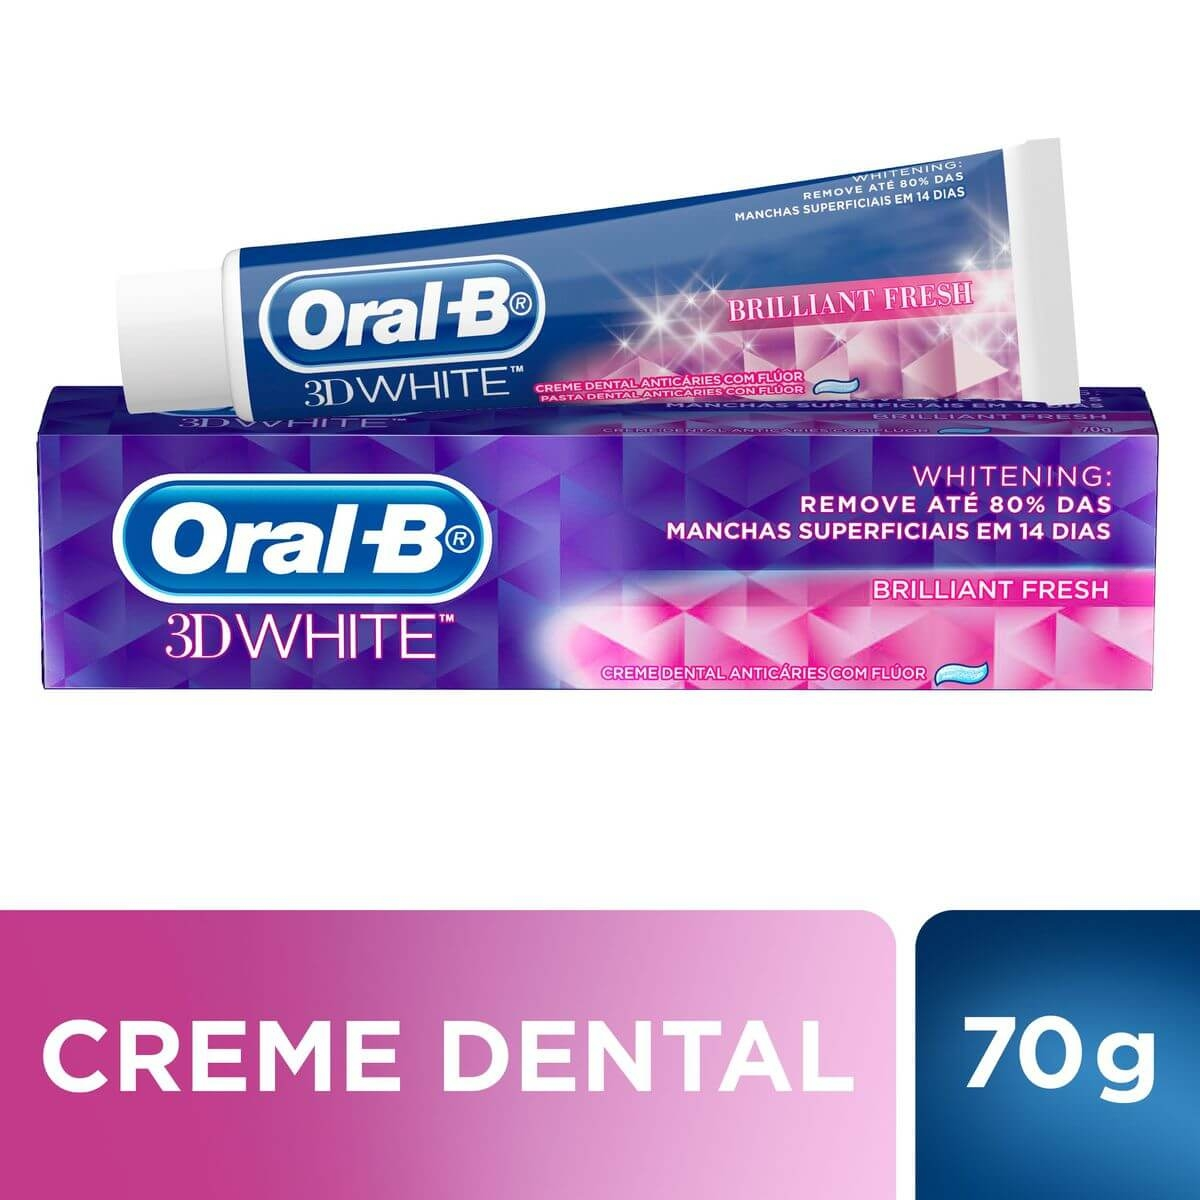 7506295388487 - CREME DENTAL ORAL-B 3D WHITE BRILLIANT FRESH CAIXA 70G